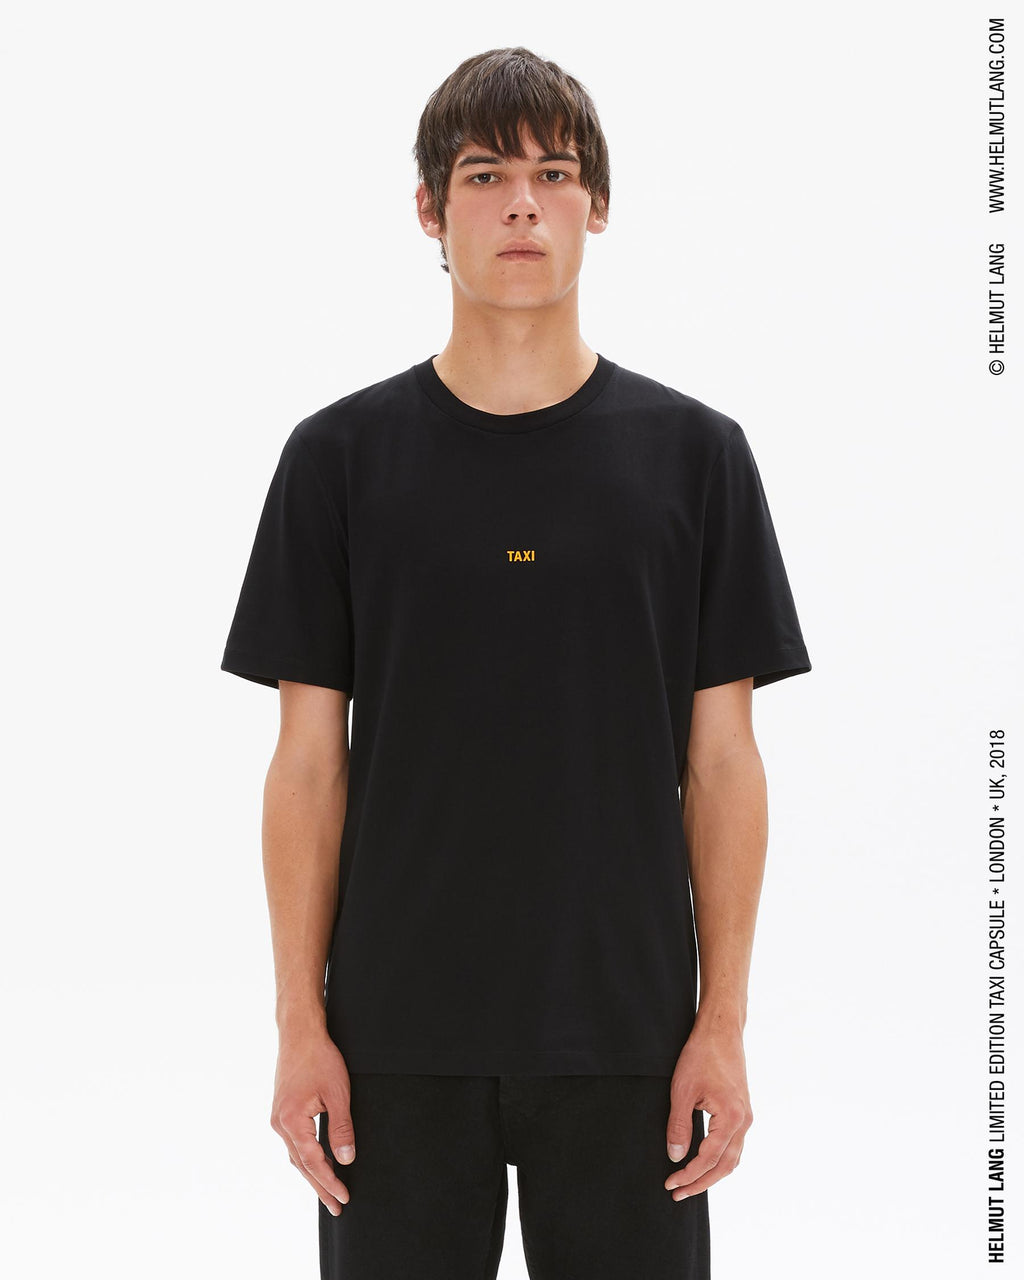 Helmut Lang, Black Taxi T-Shirt (London), 017 Shop